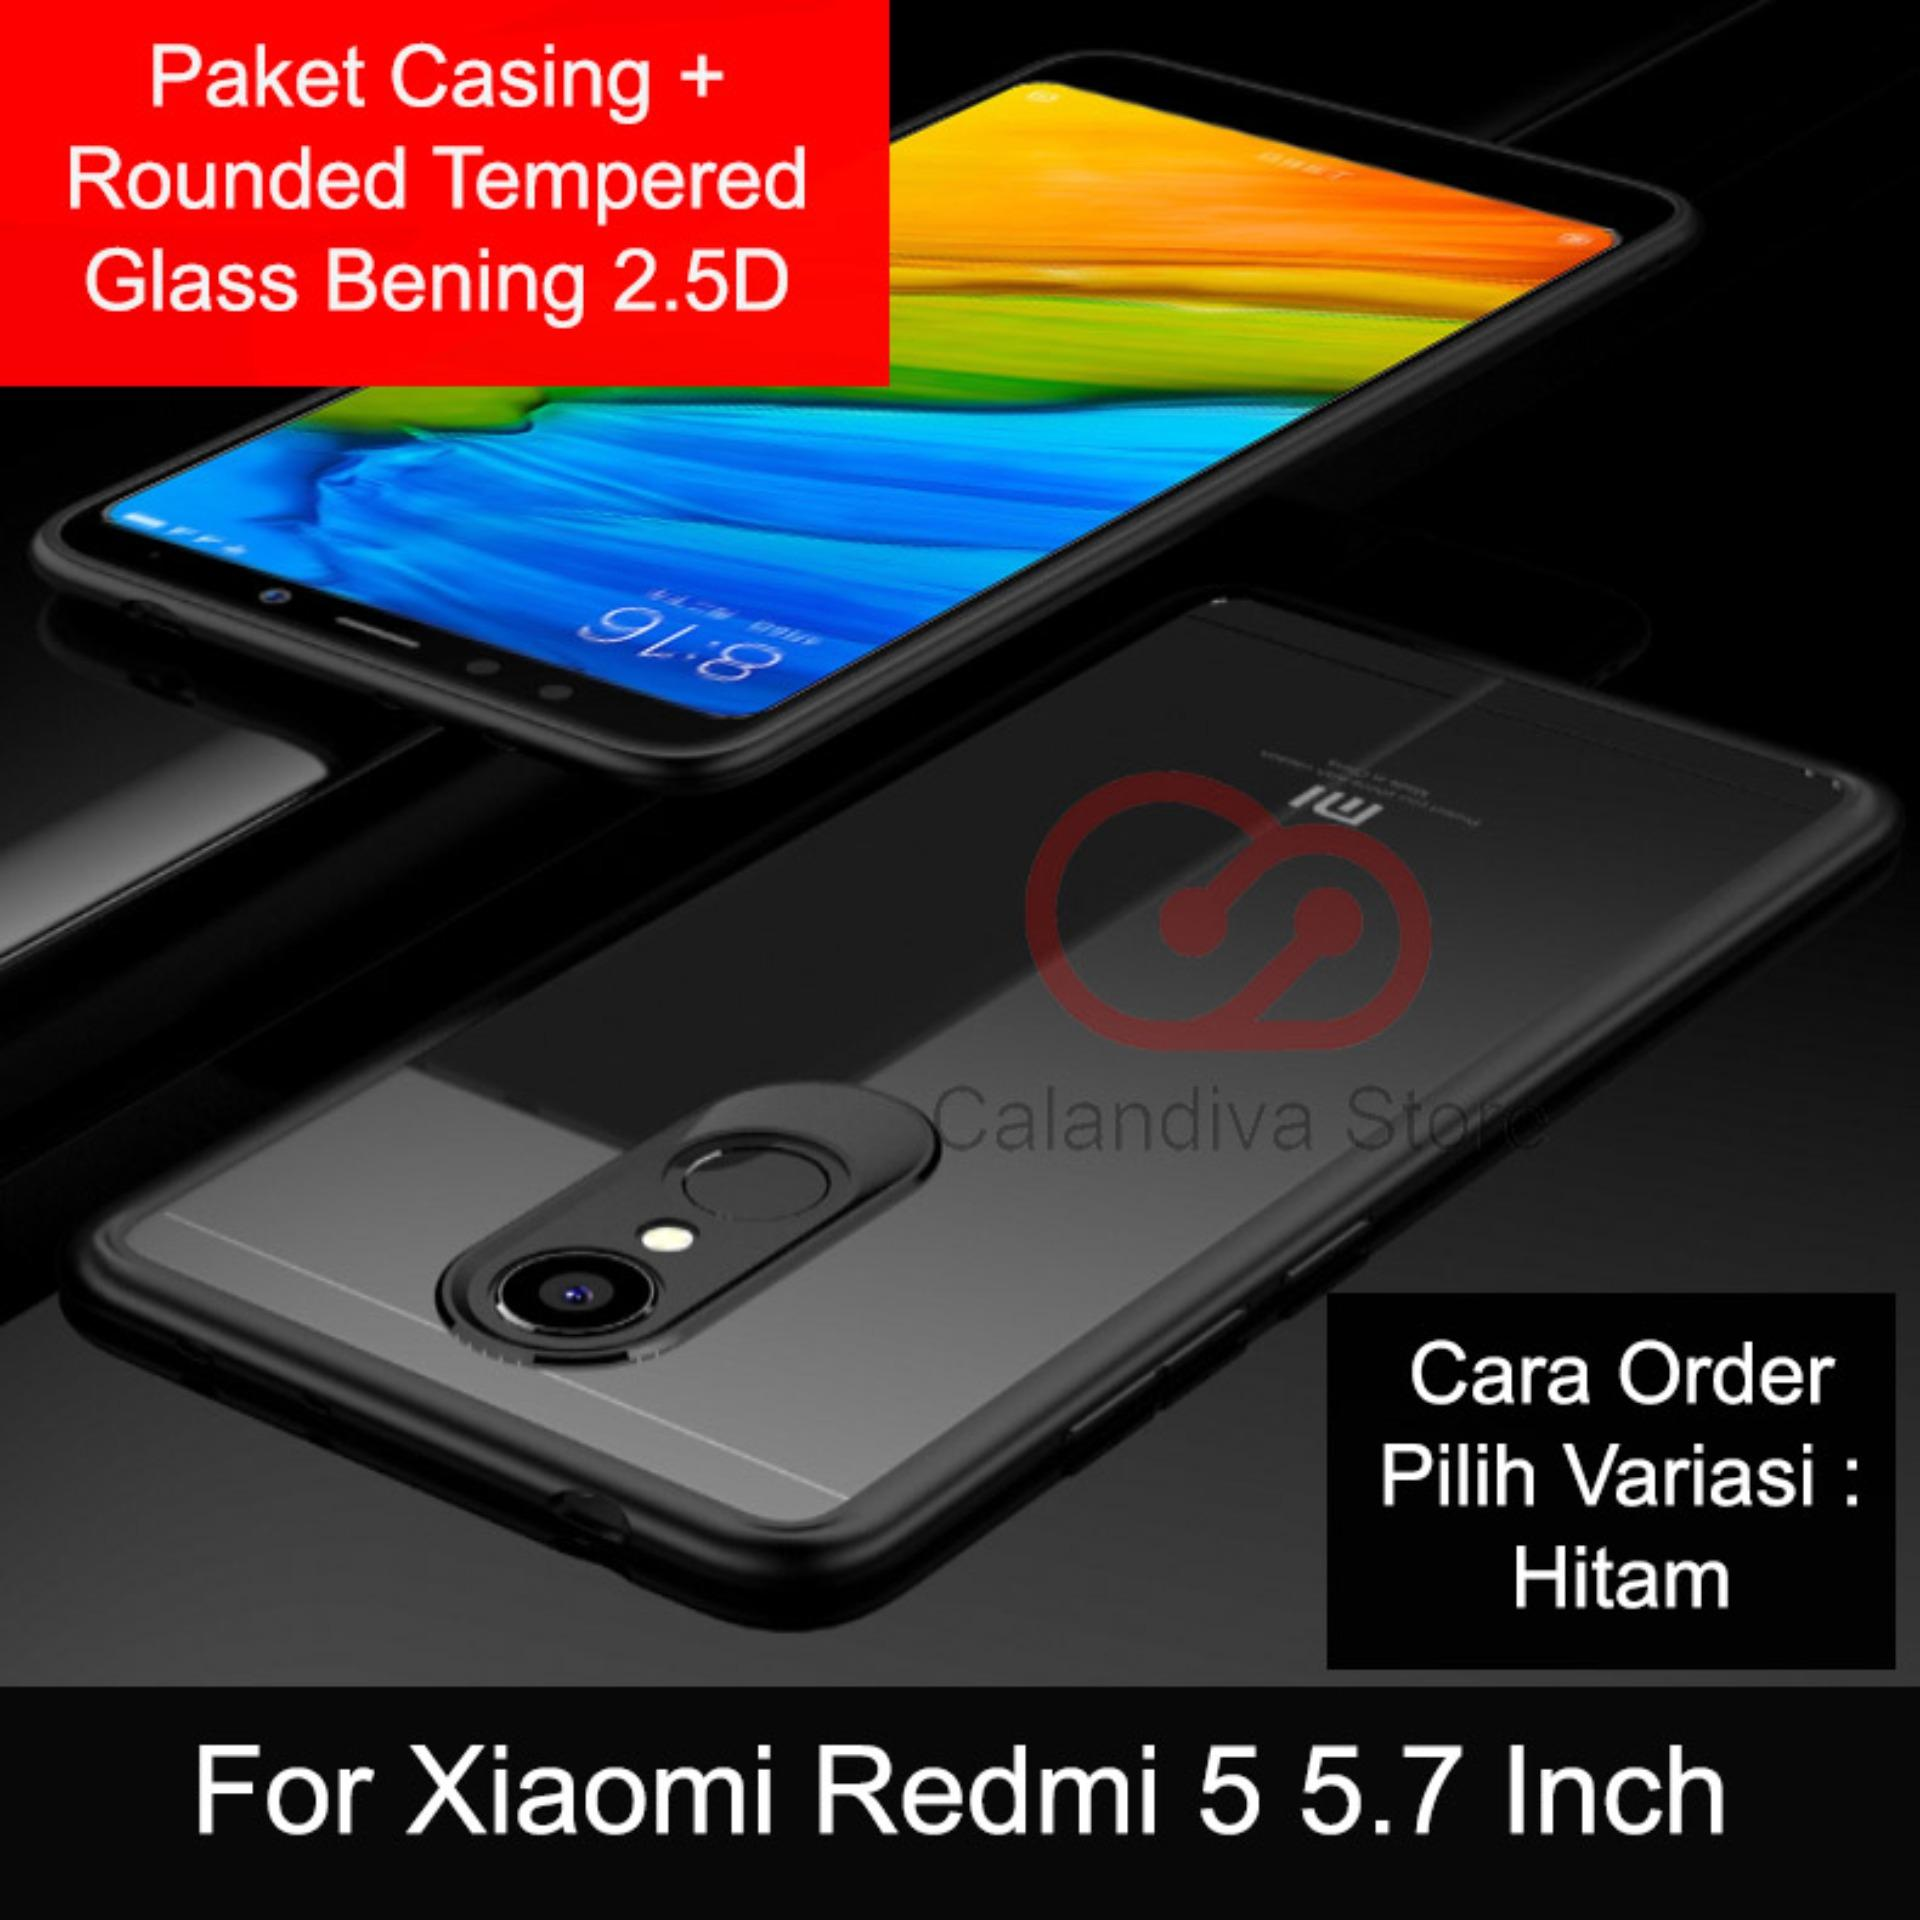 Katalog Calandiva Transparent Shockproof Hybrid Premium Quality Grade A Case For Xiaomi Redmi 5 5 7 Inch Rounded Tempered Glass Bening 2 5D Terbaru